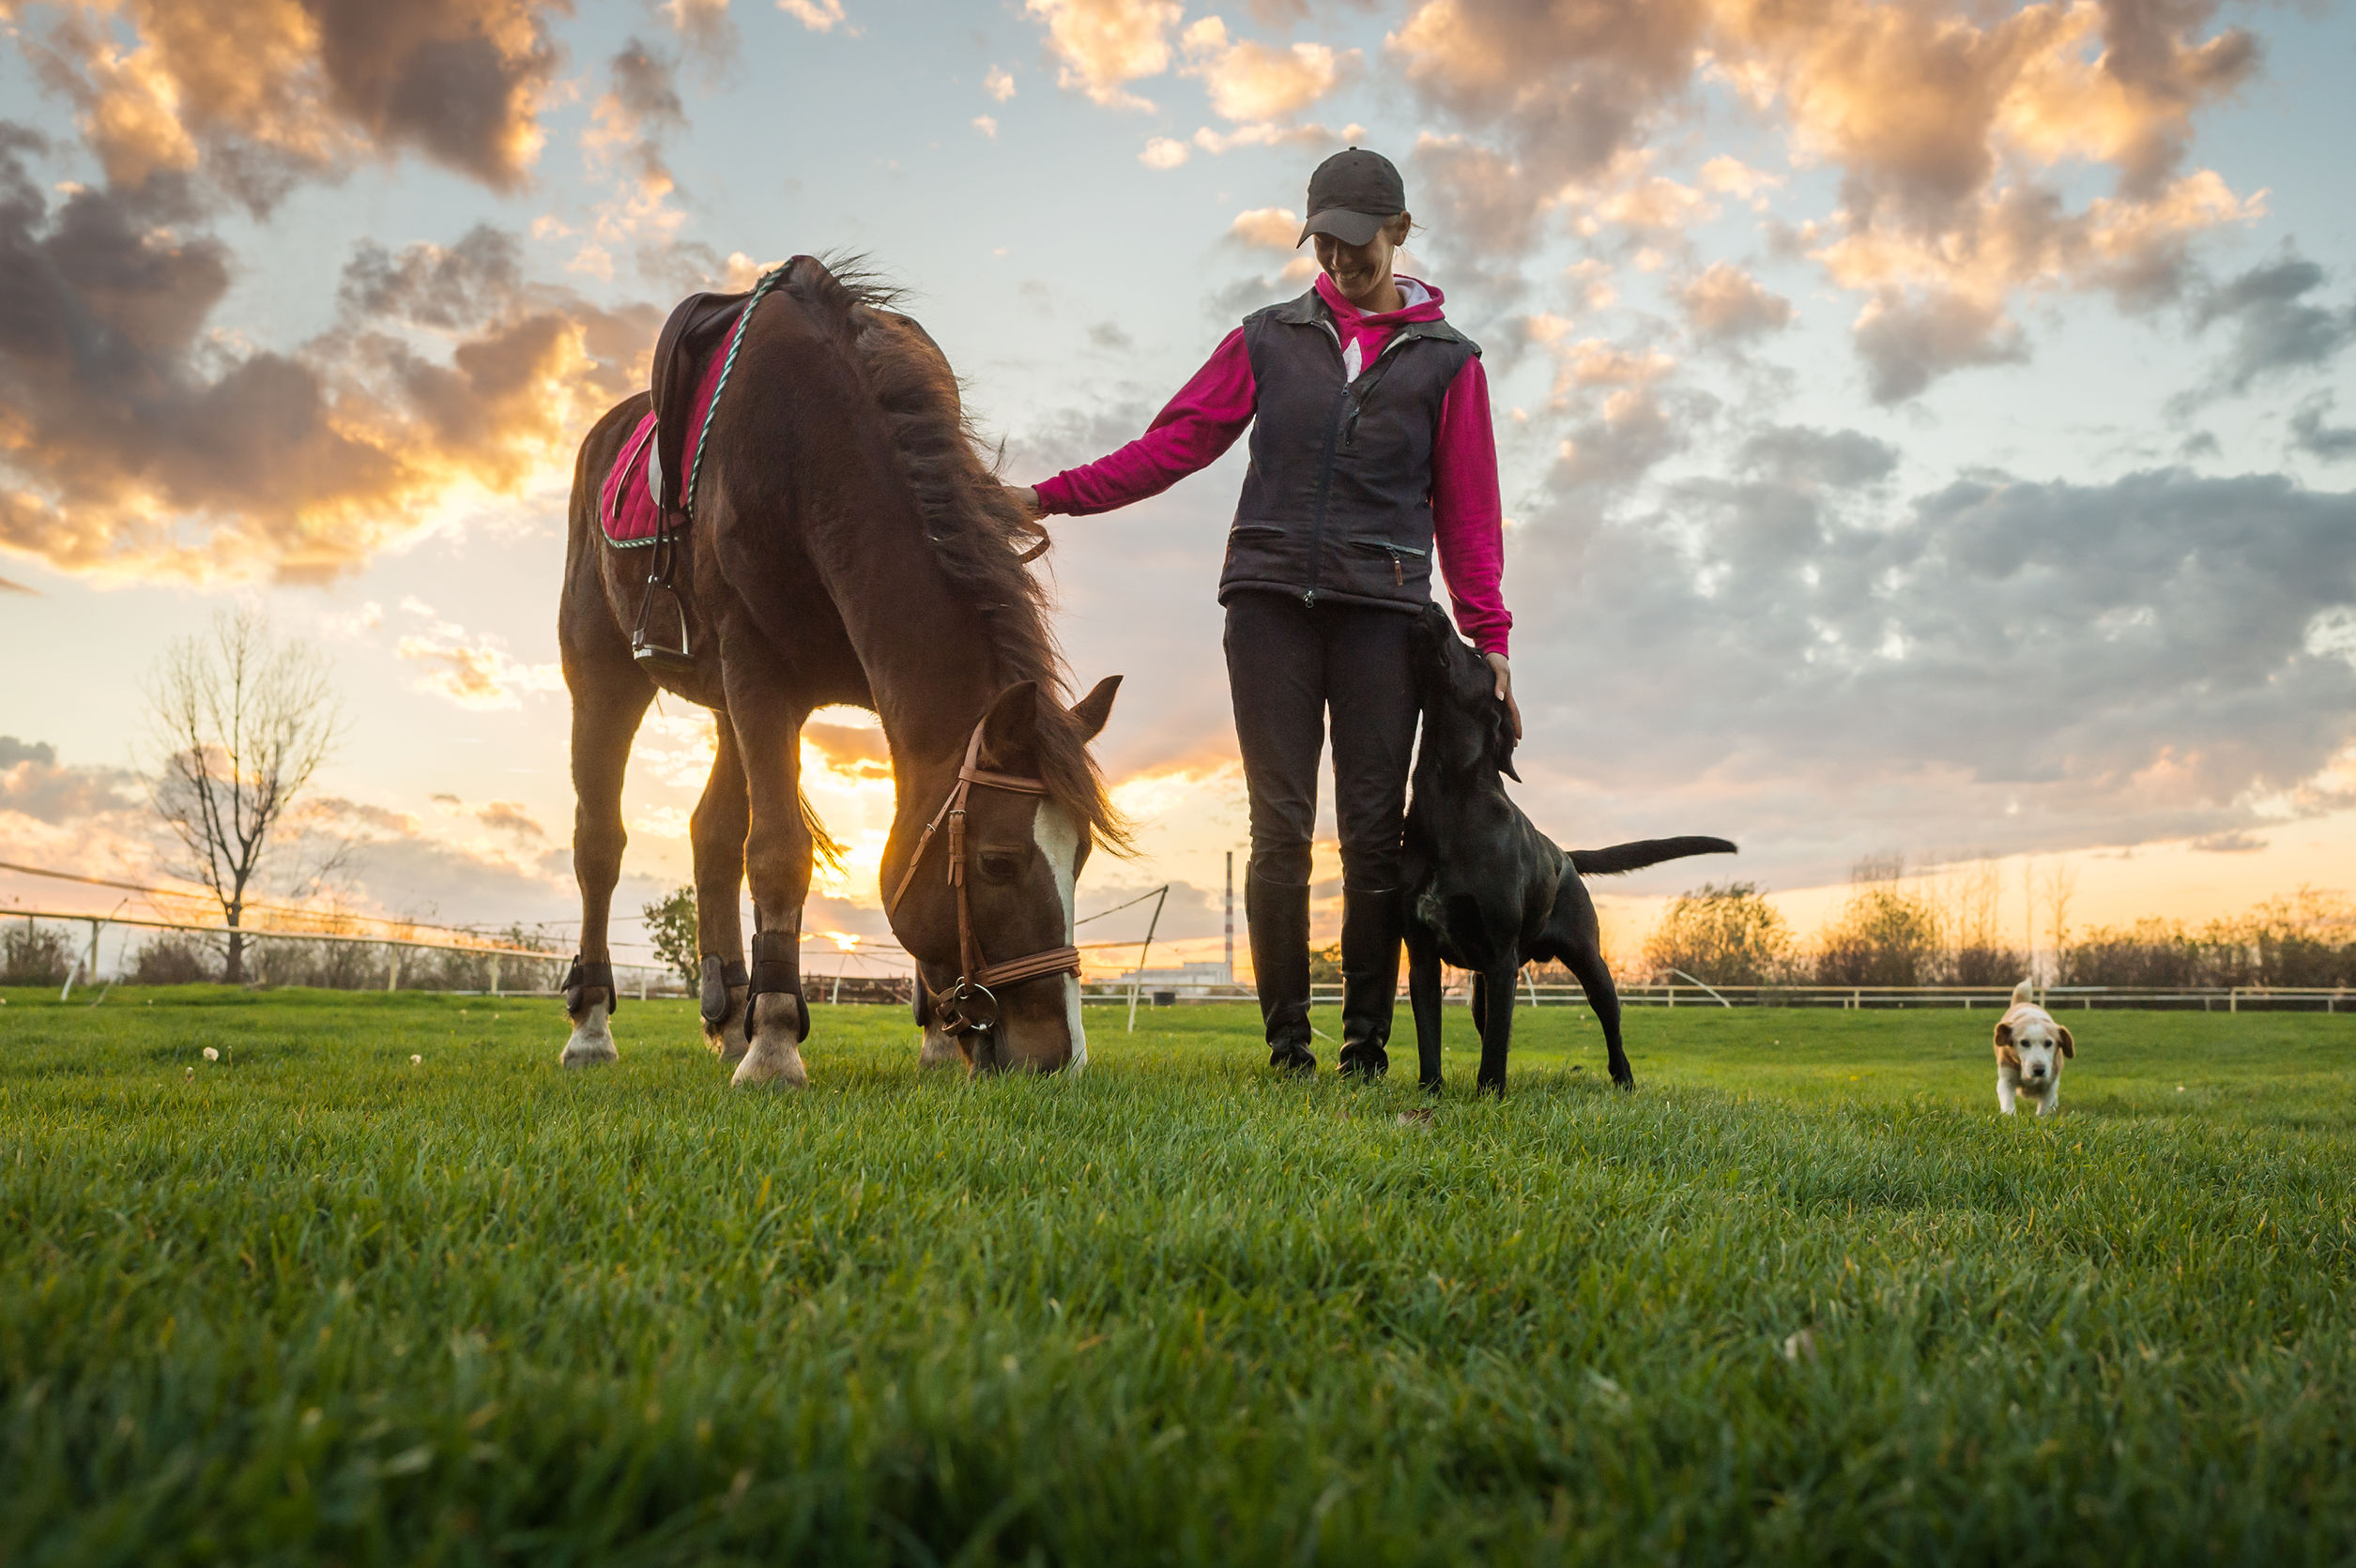 33818259 - girl and horse at sunset